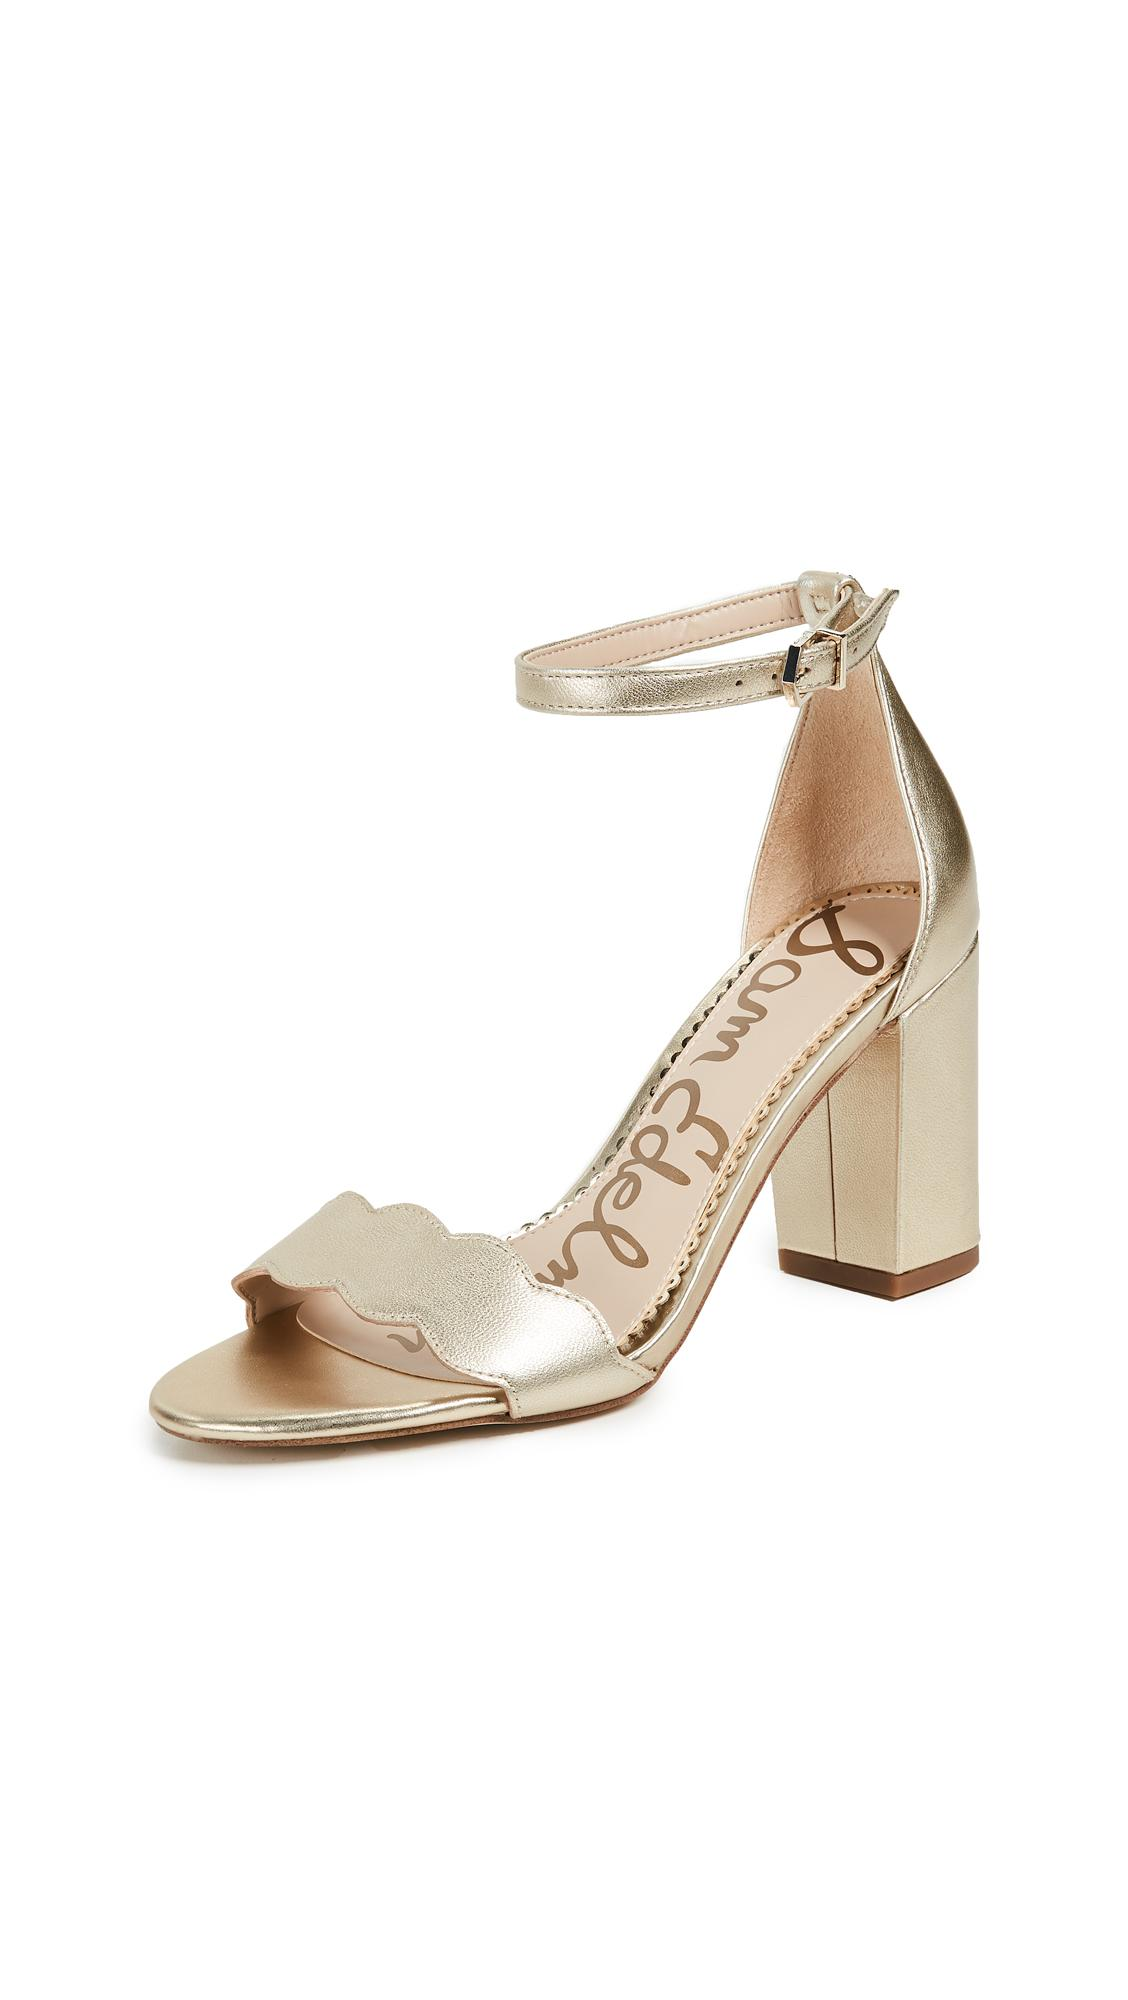 efb65b49186 Sam Edelman Odila Sandals In Molten Gold